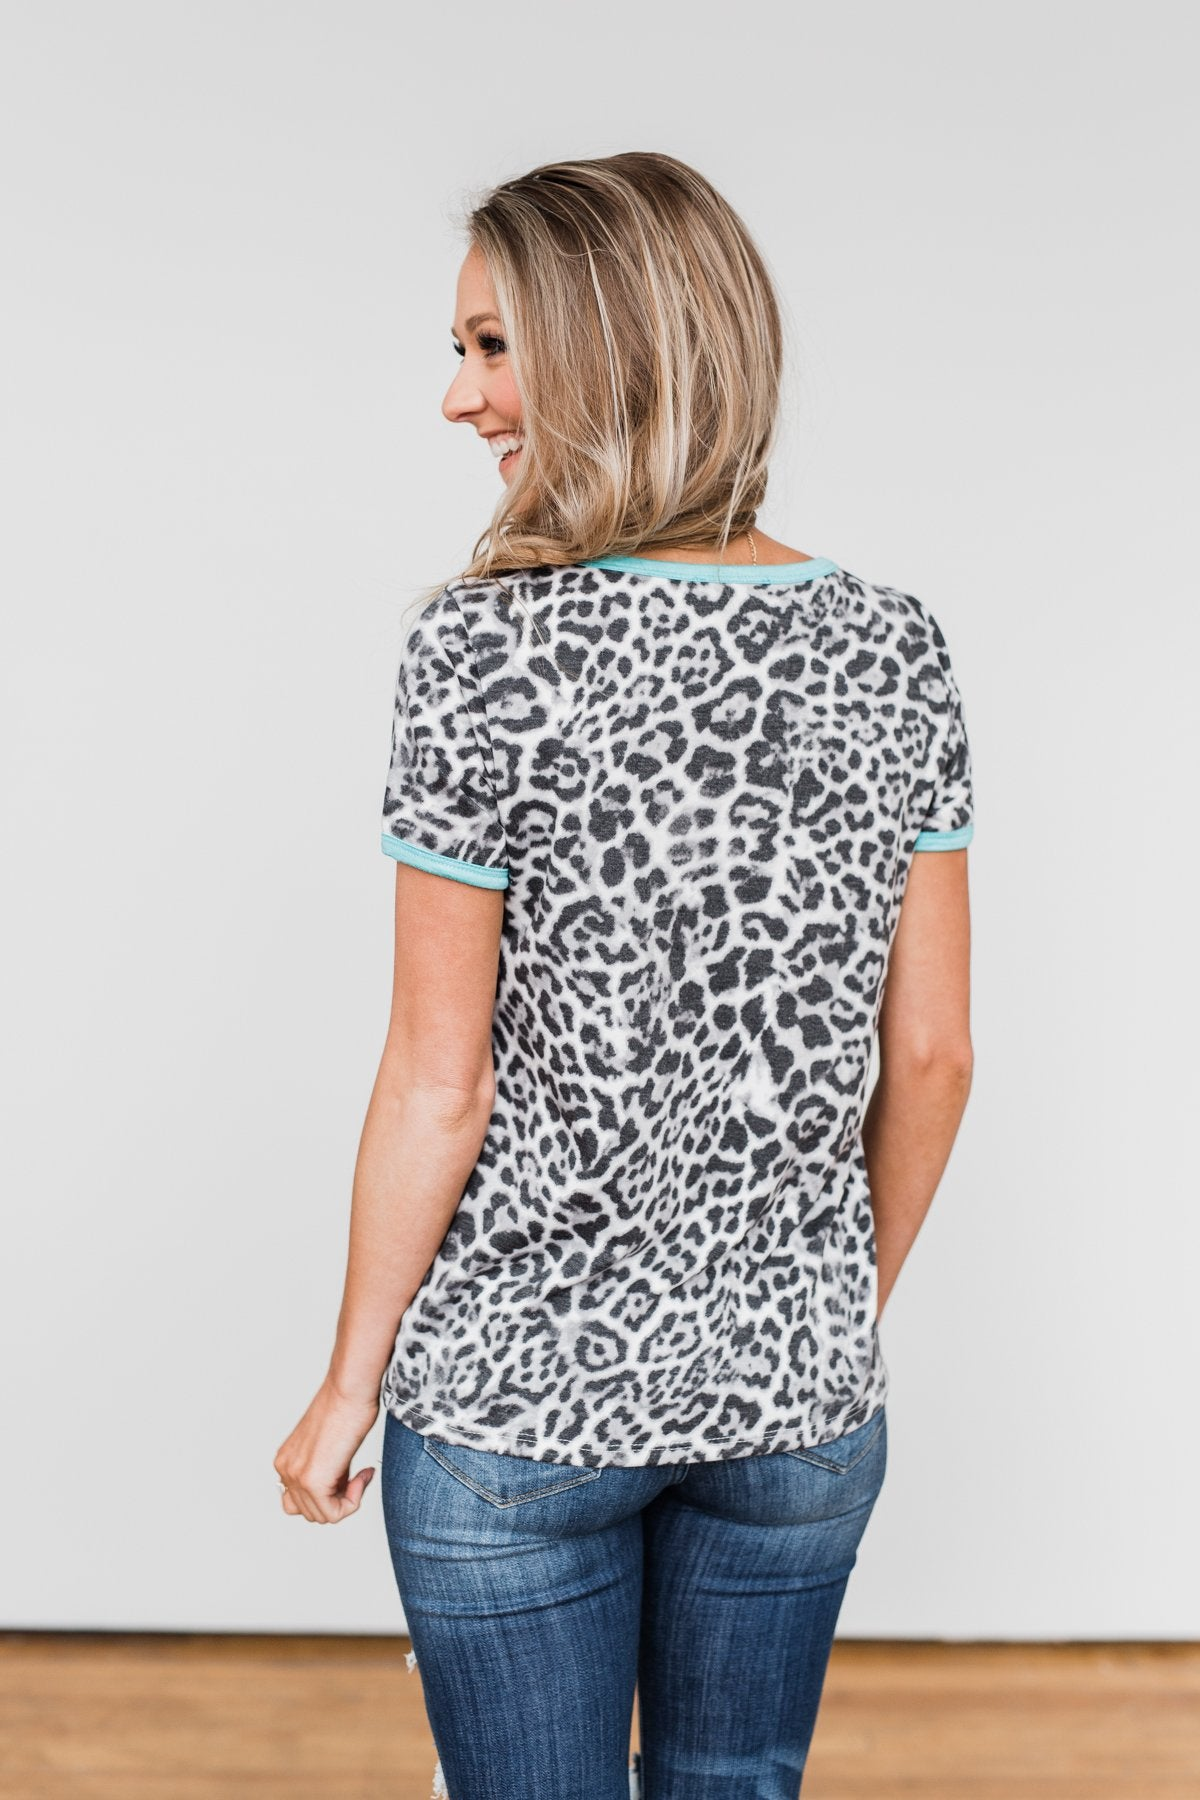 Take My Breath Away Leopard Top- Grey & Mint Blue